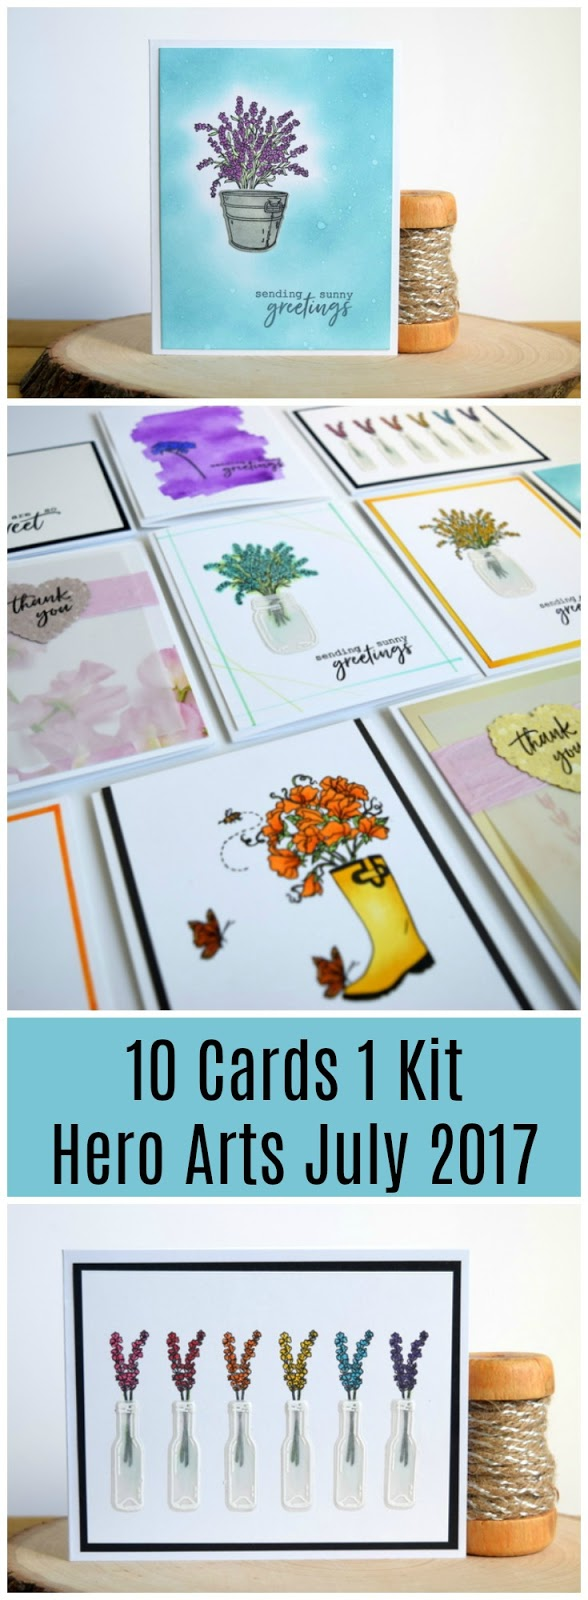 10 Cards 1 Kit by Jess Crafts using Hero Arts My Monthly Hero July 2017 Kit